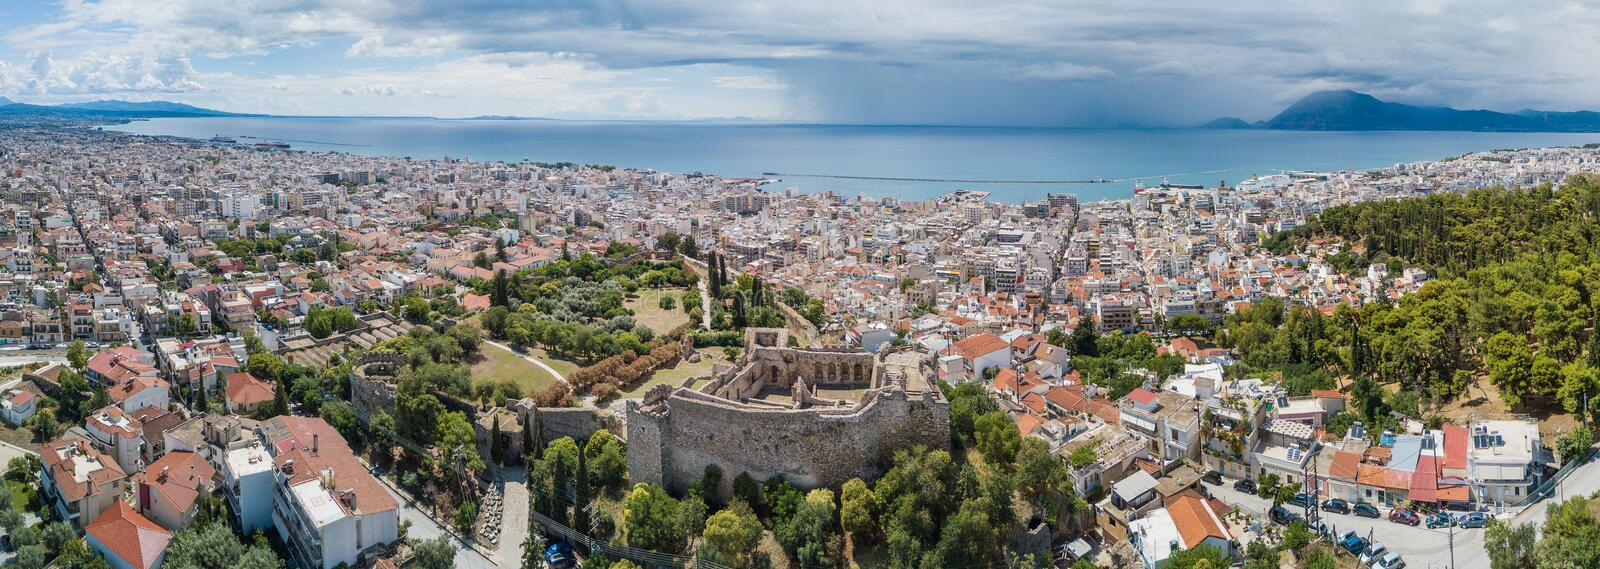 Aerial drone photo of famous town and castle of Patras, Peloponnese, Greece. Panorama stock images